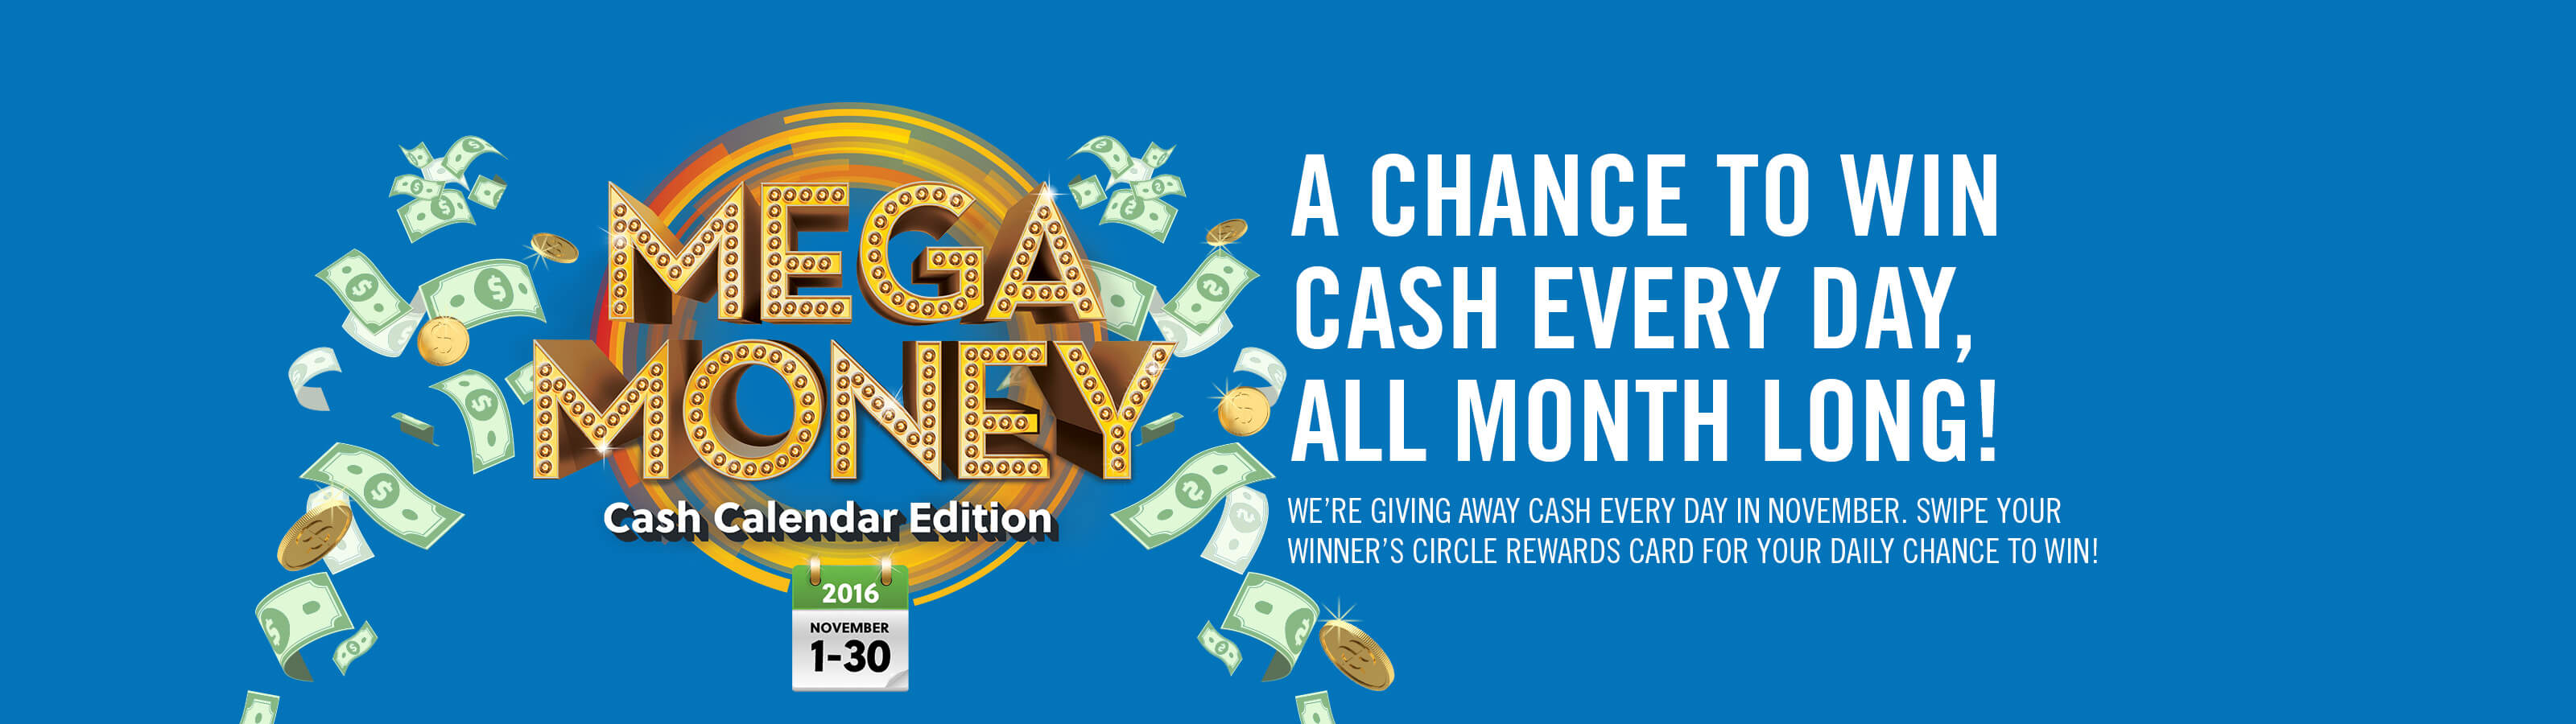 chance to win cash online